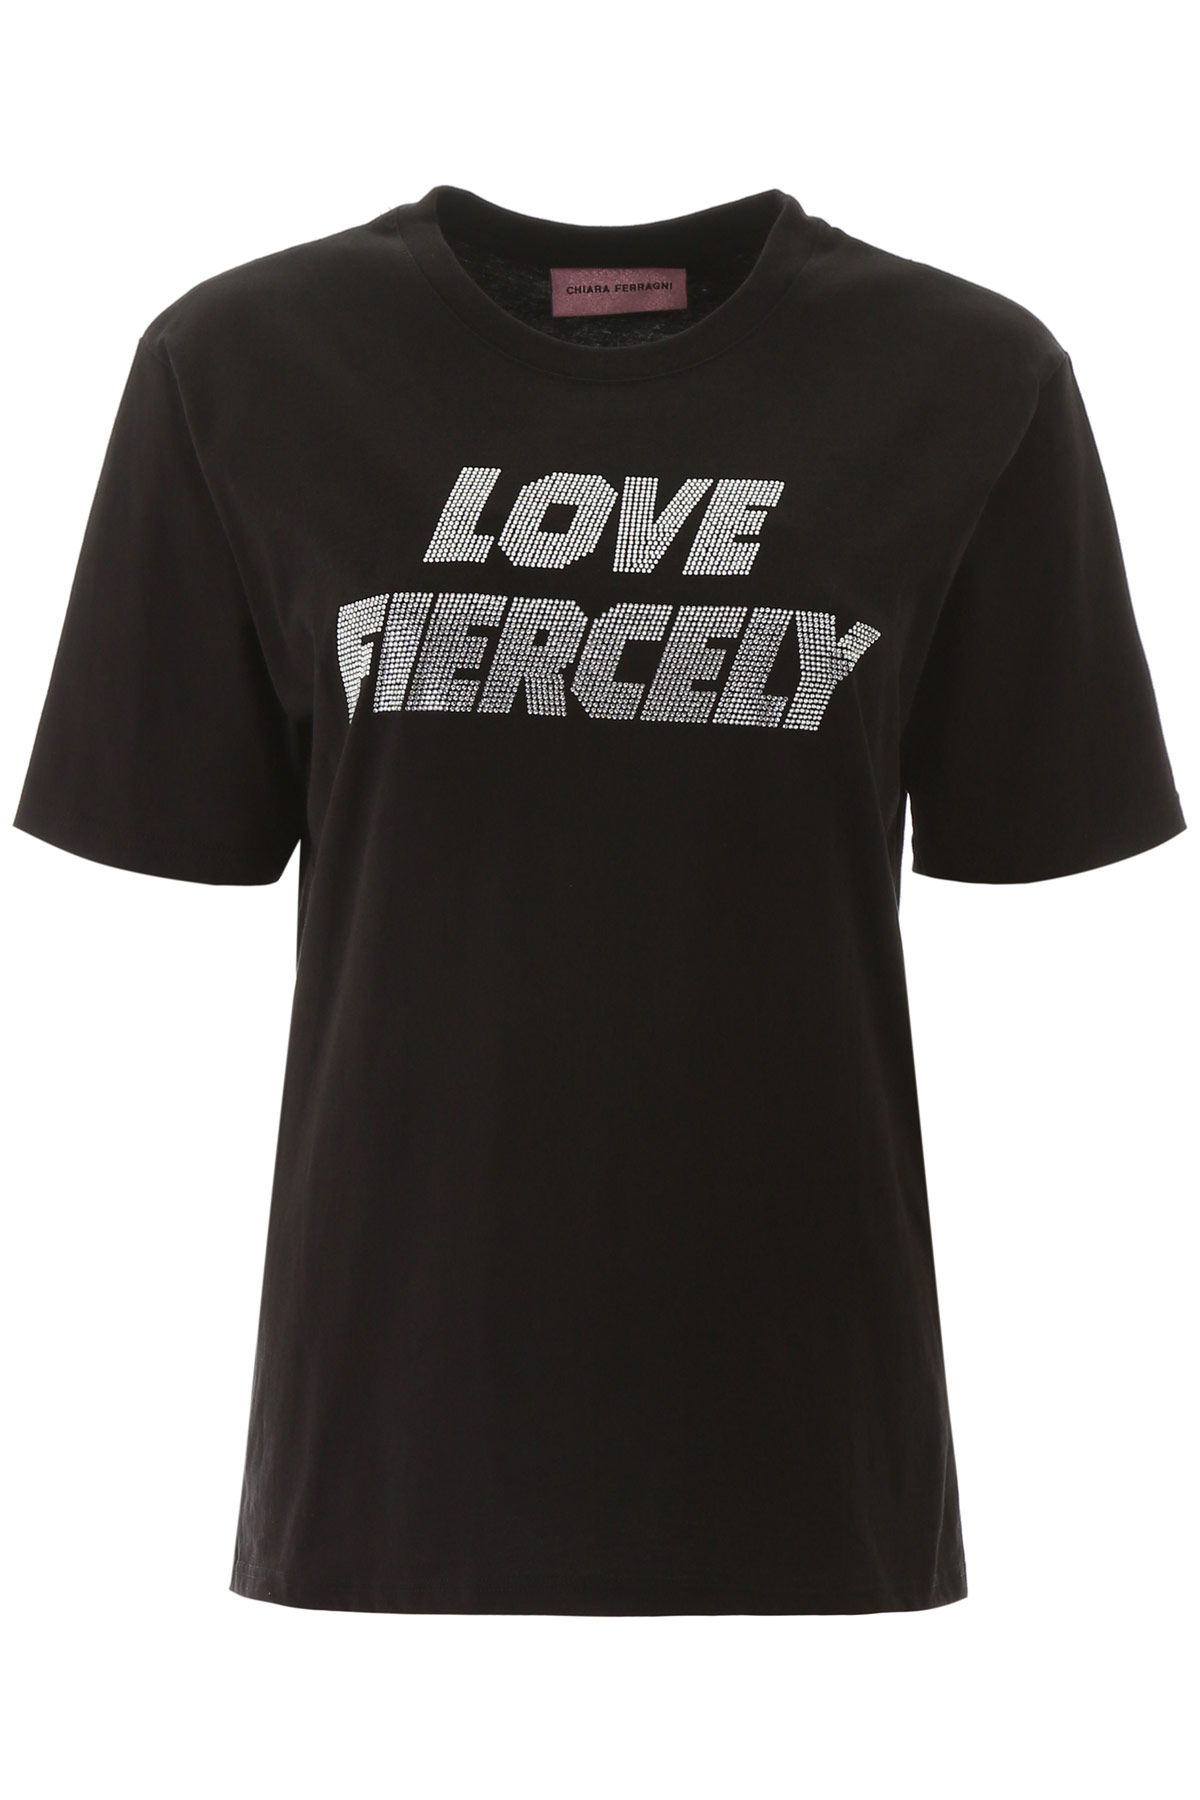 CHIARA FERRAGNI LOVE FIERCELY T-SHIRT S Black, Metallic Cotton